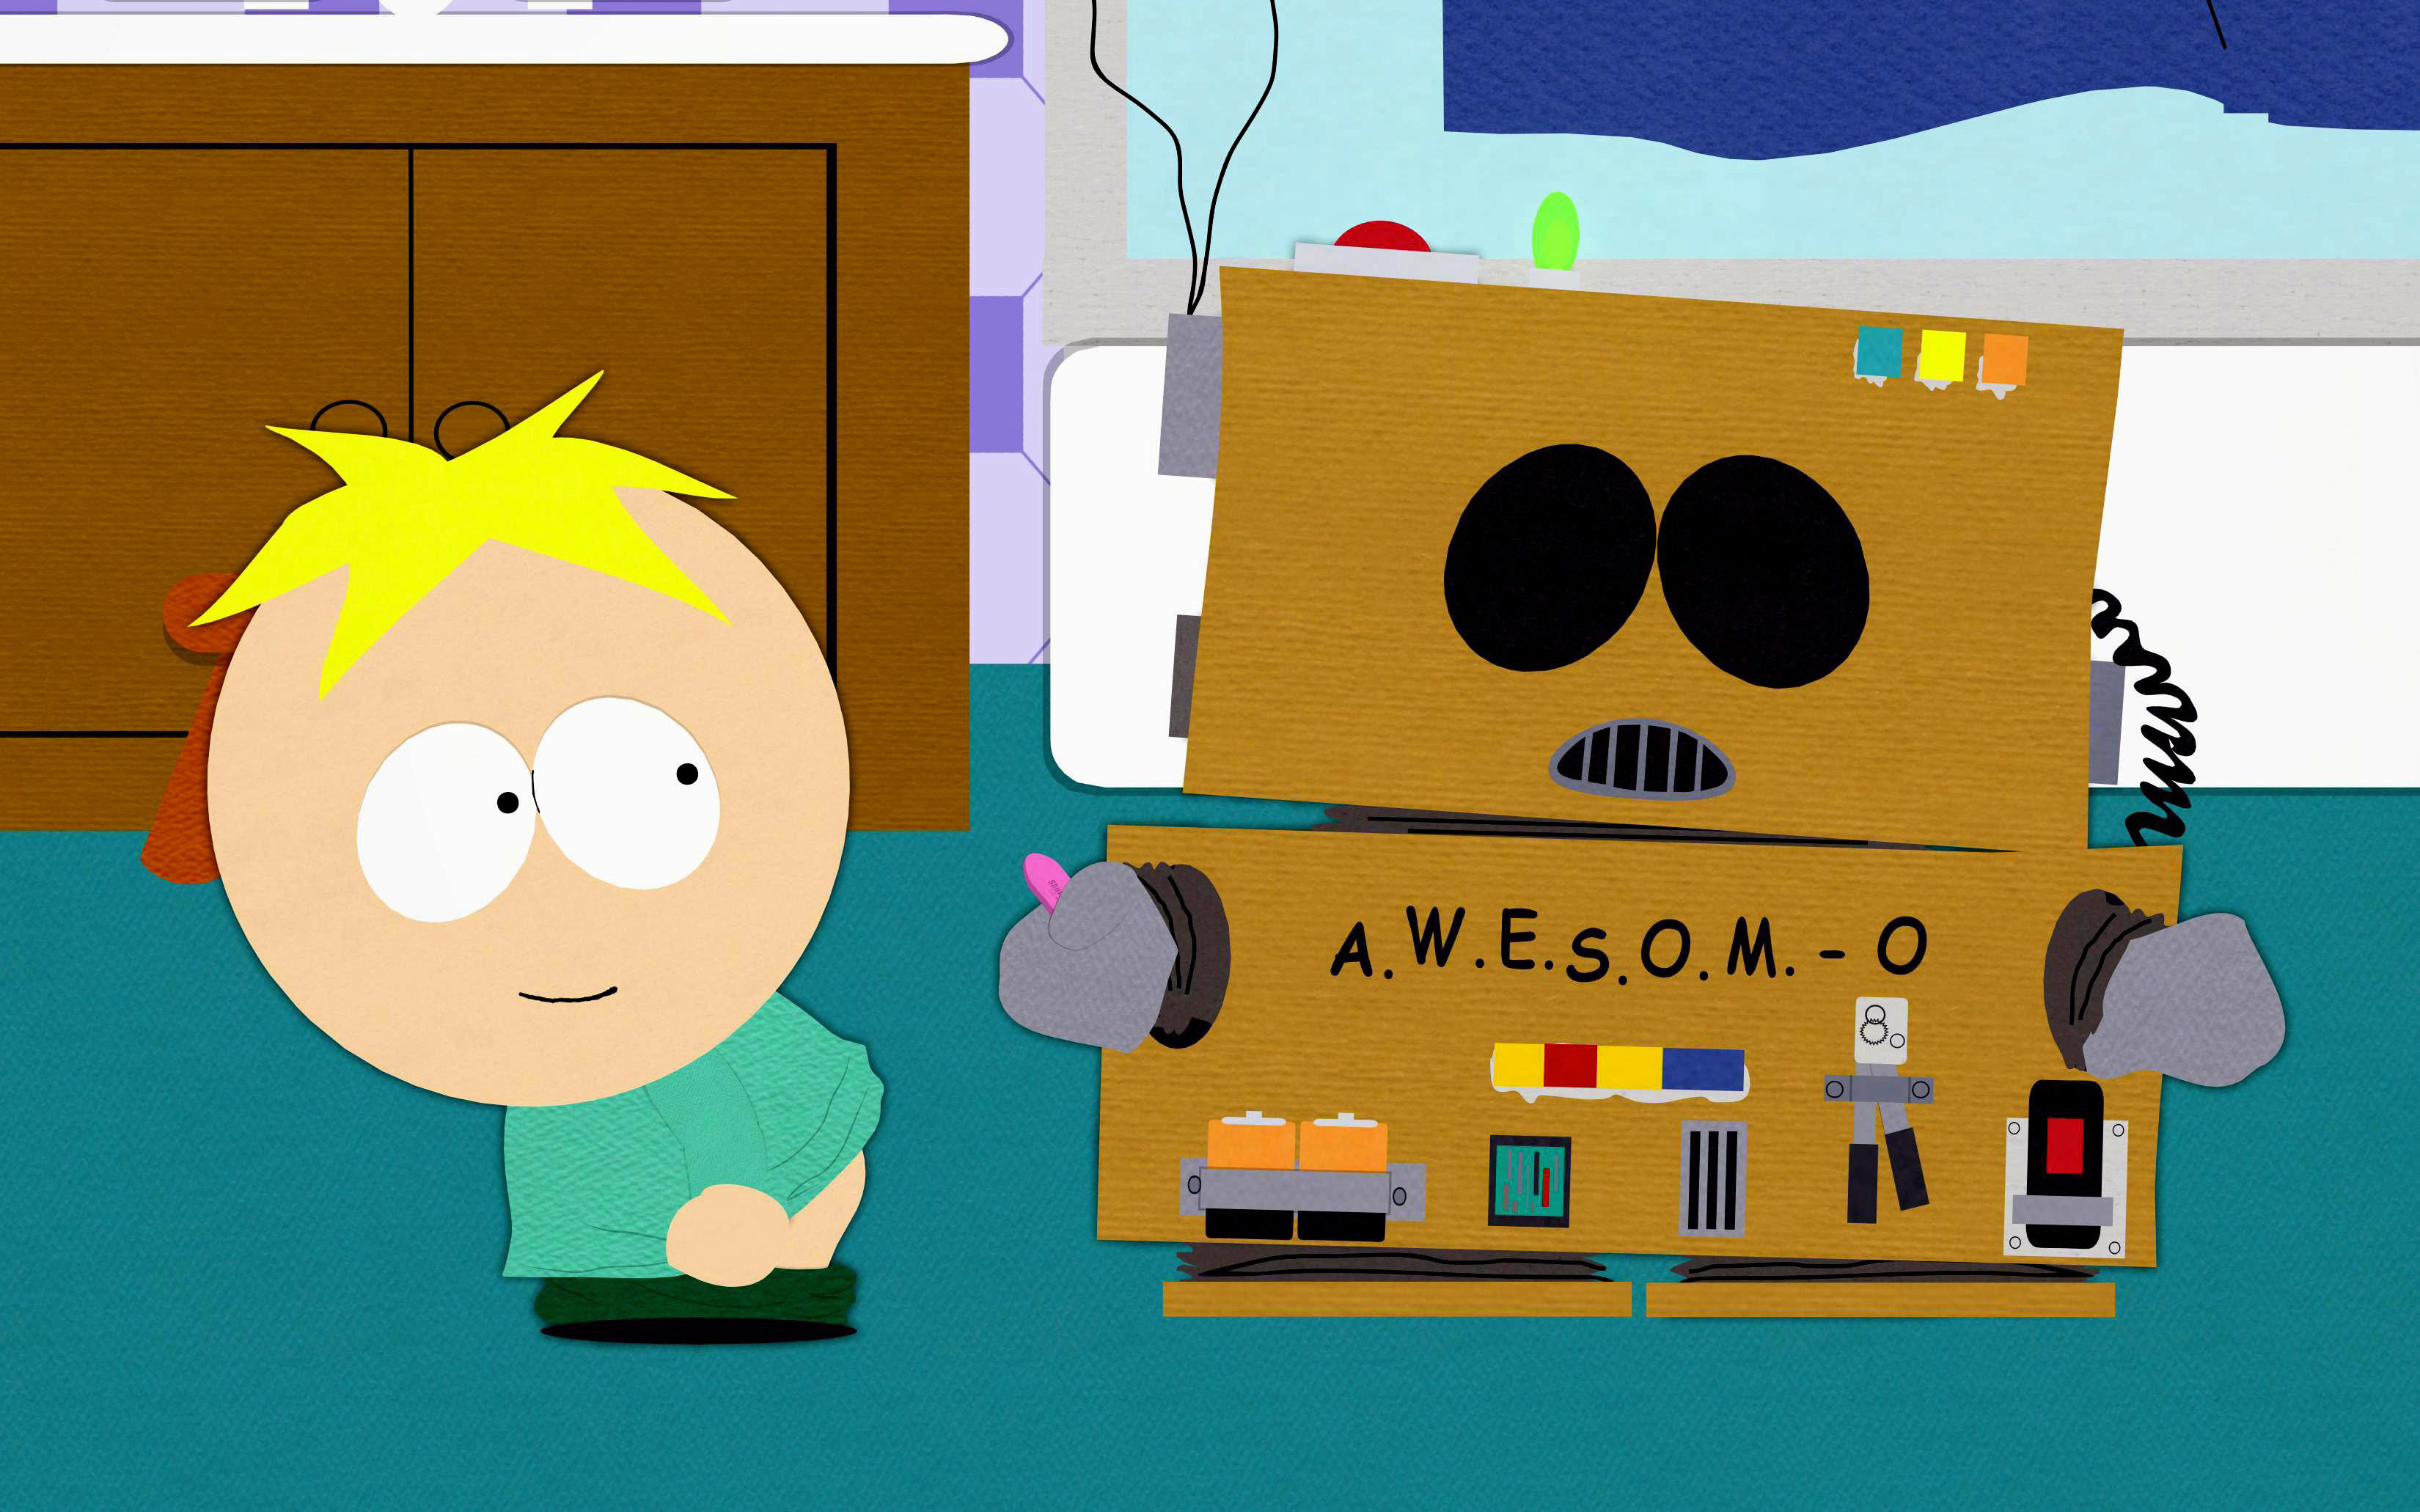 South park wallpapers pictures images - South park wallpaper butters ...